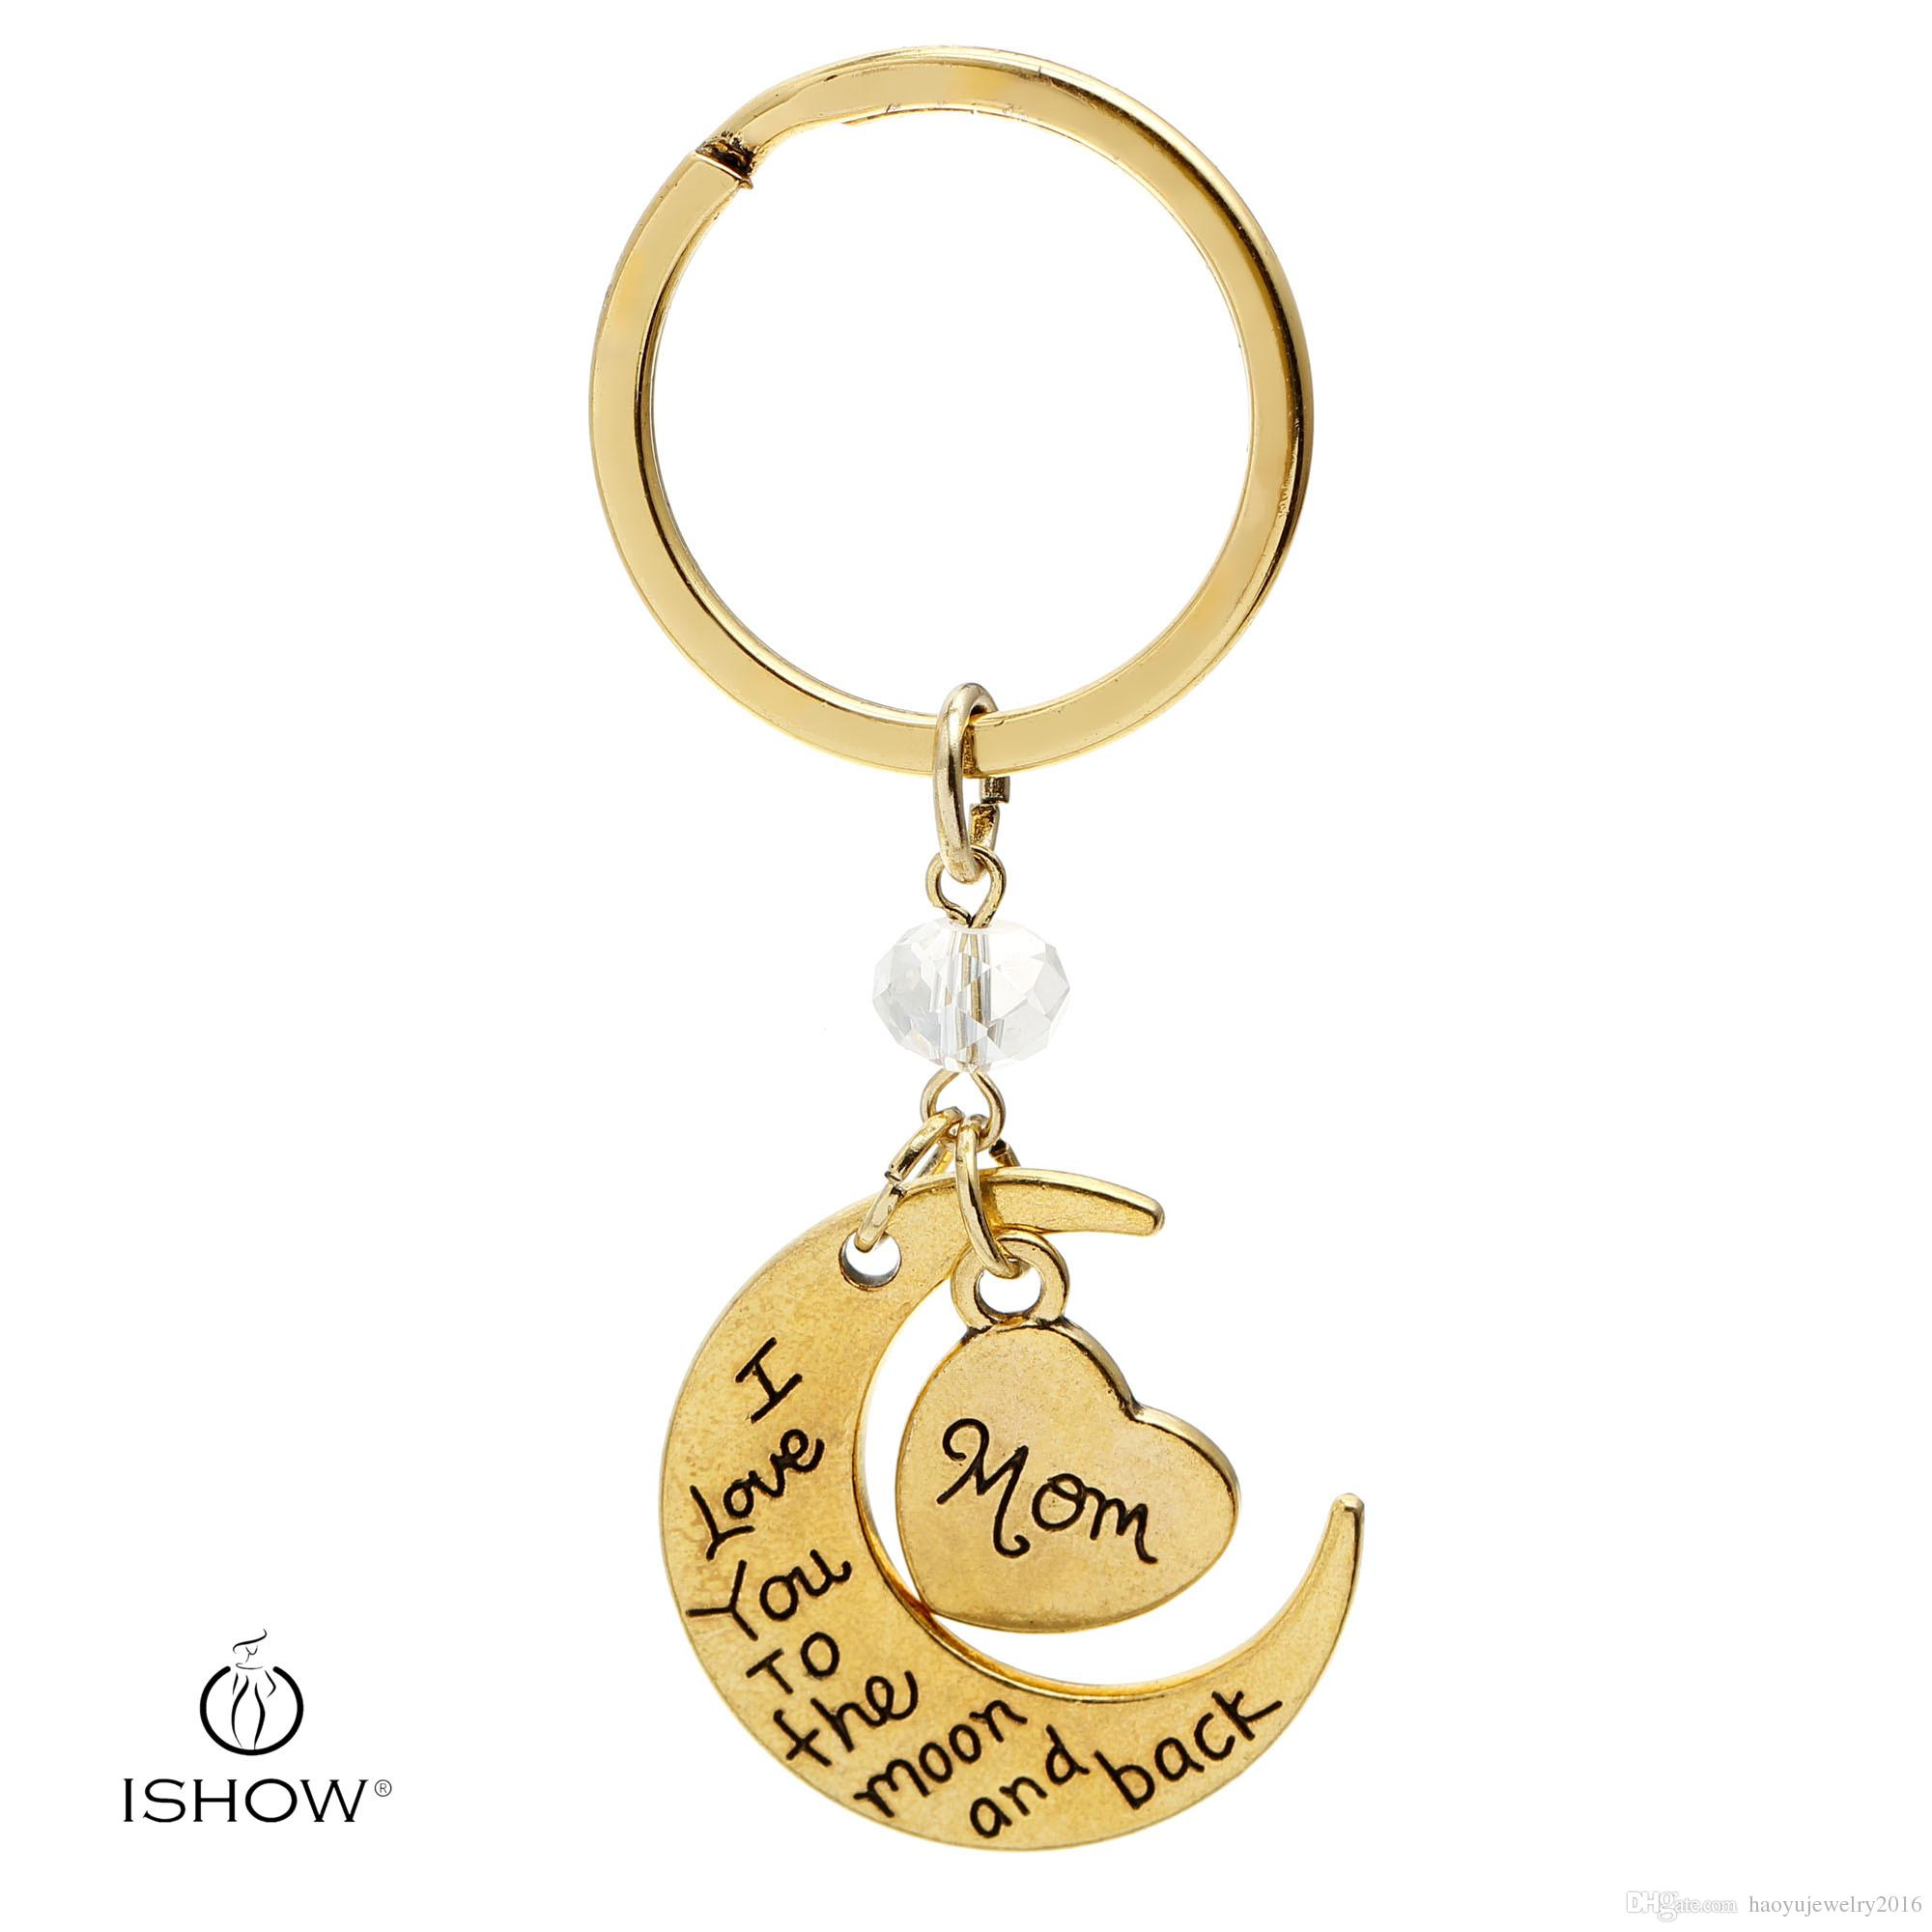 archibald rings key chain woman zoom htm swarovski jewellery en